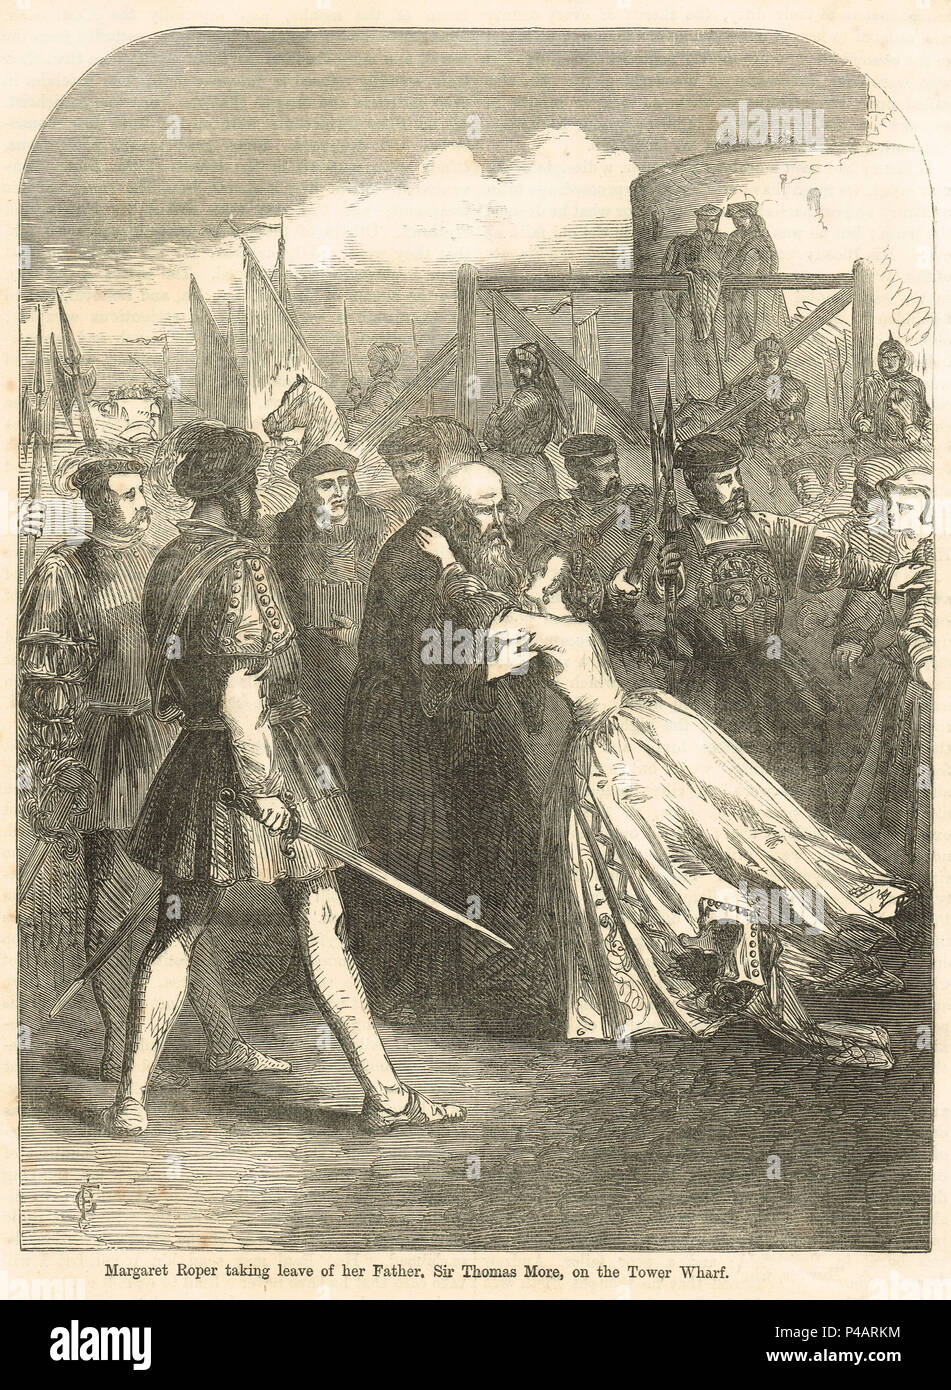 Margaret Roper taking leave of her father, Sir Thomas More, Tower Wharf, at his execution 6 July 1535 - Stock Image